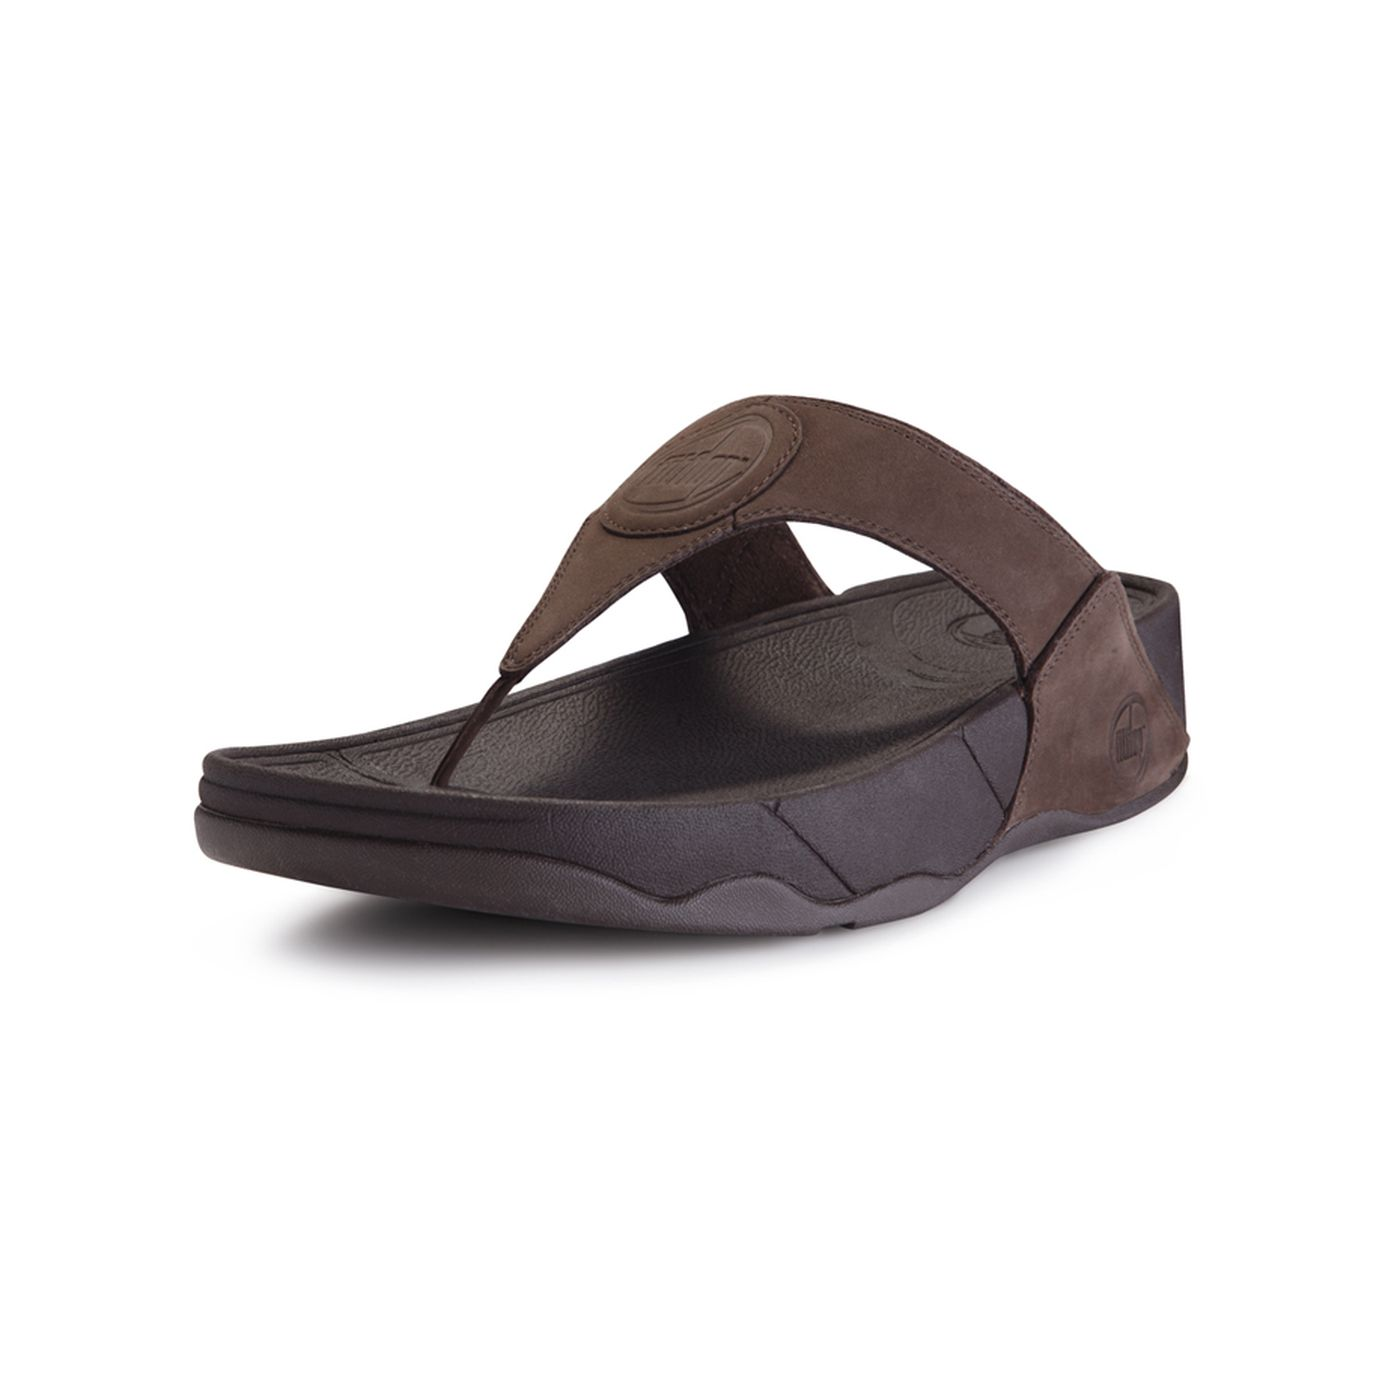 e5a2c812848c52 Fitflop Womens Walkstar Iii Nubuck Thong Sandals